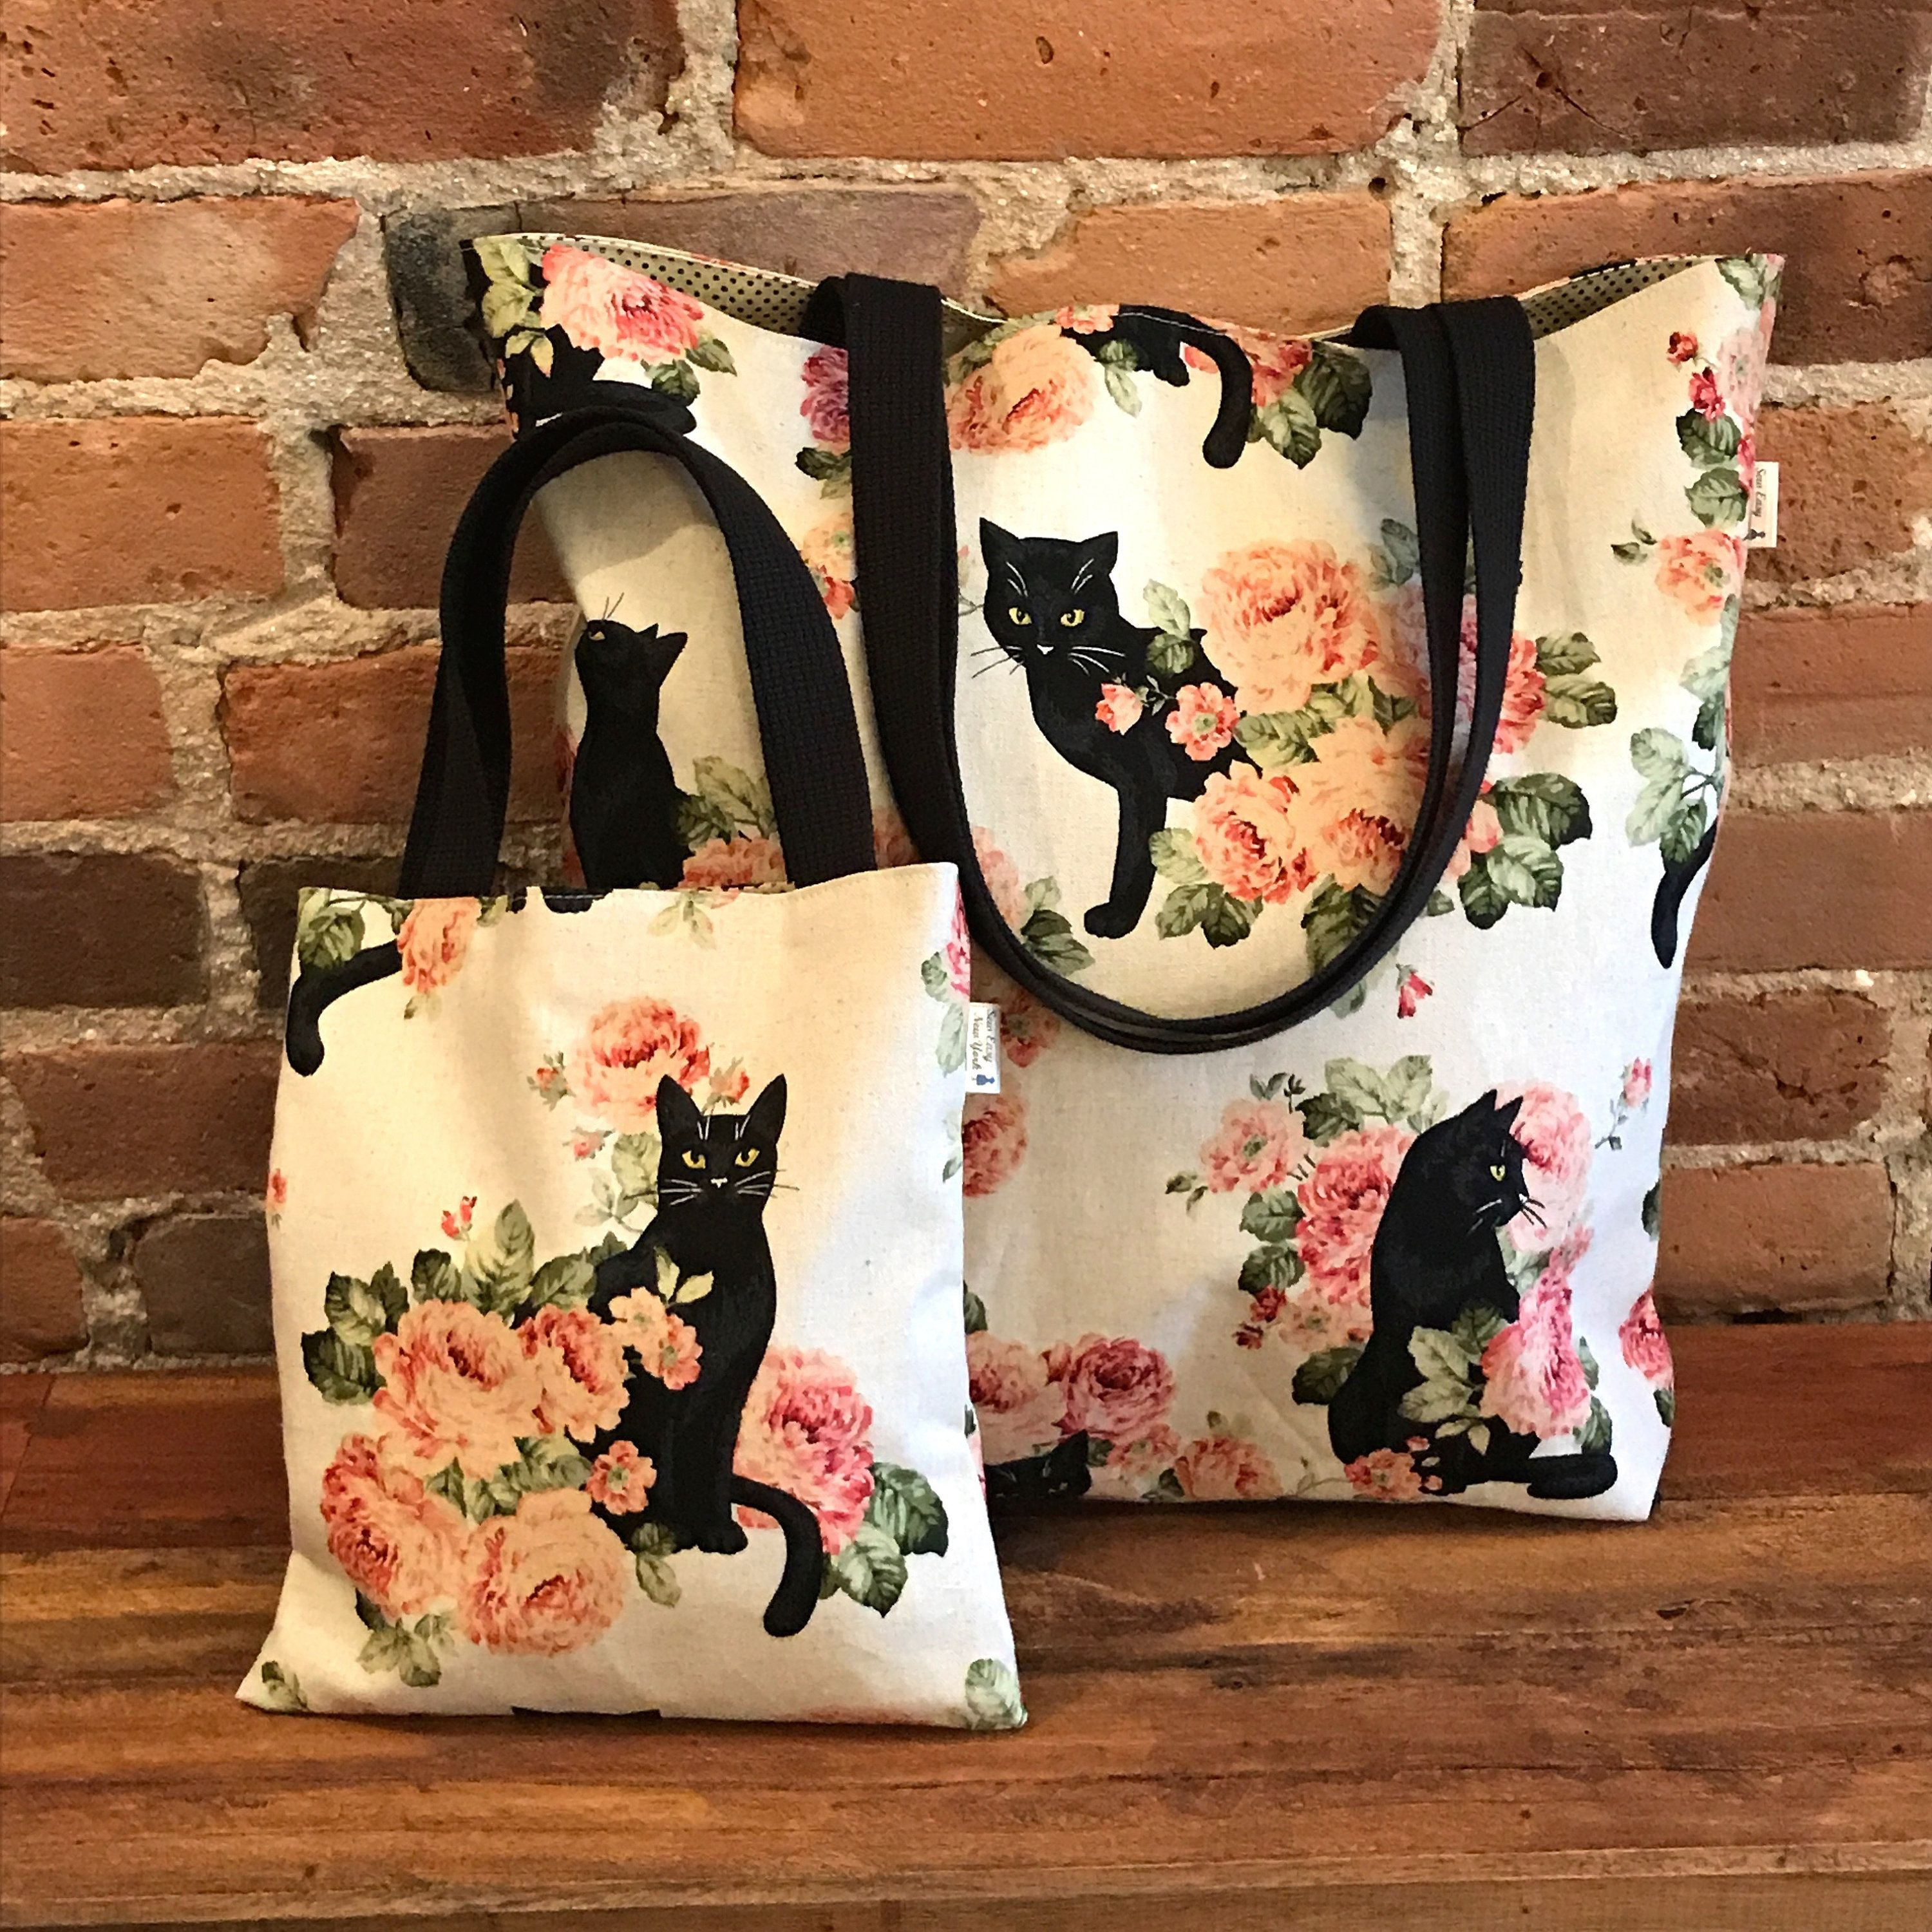 0167f92613 Black Cat with Roses Large & Mini tote bags, Cat Bags, Cat Lover, Fully  lined. Mom and Daughter, matching bags, Bag in Bag